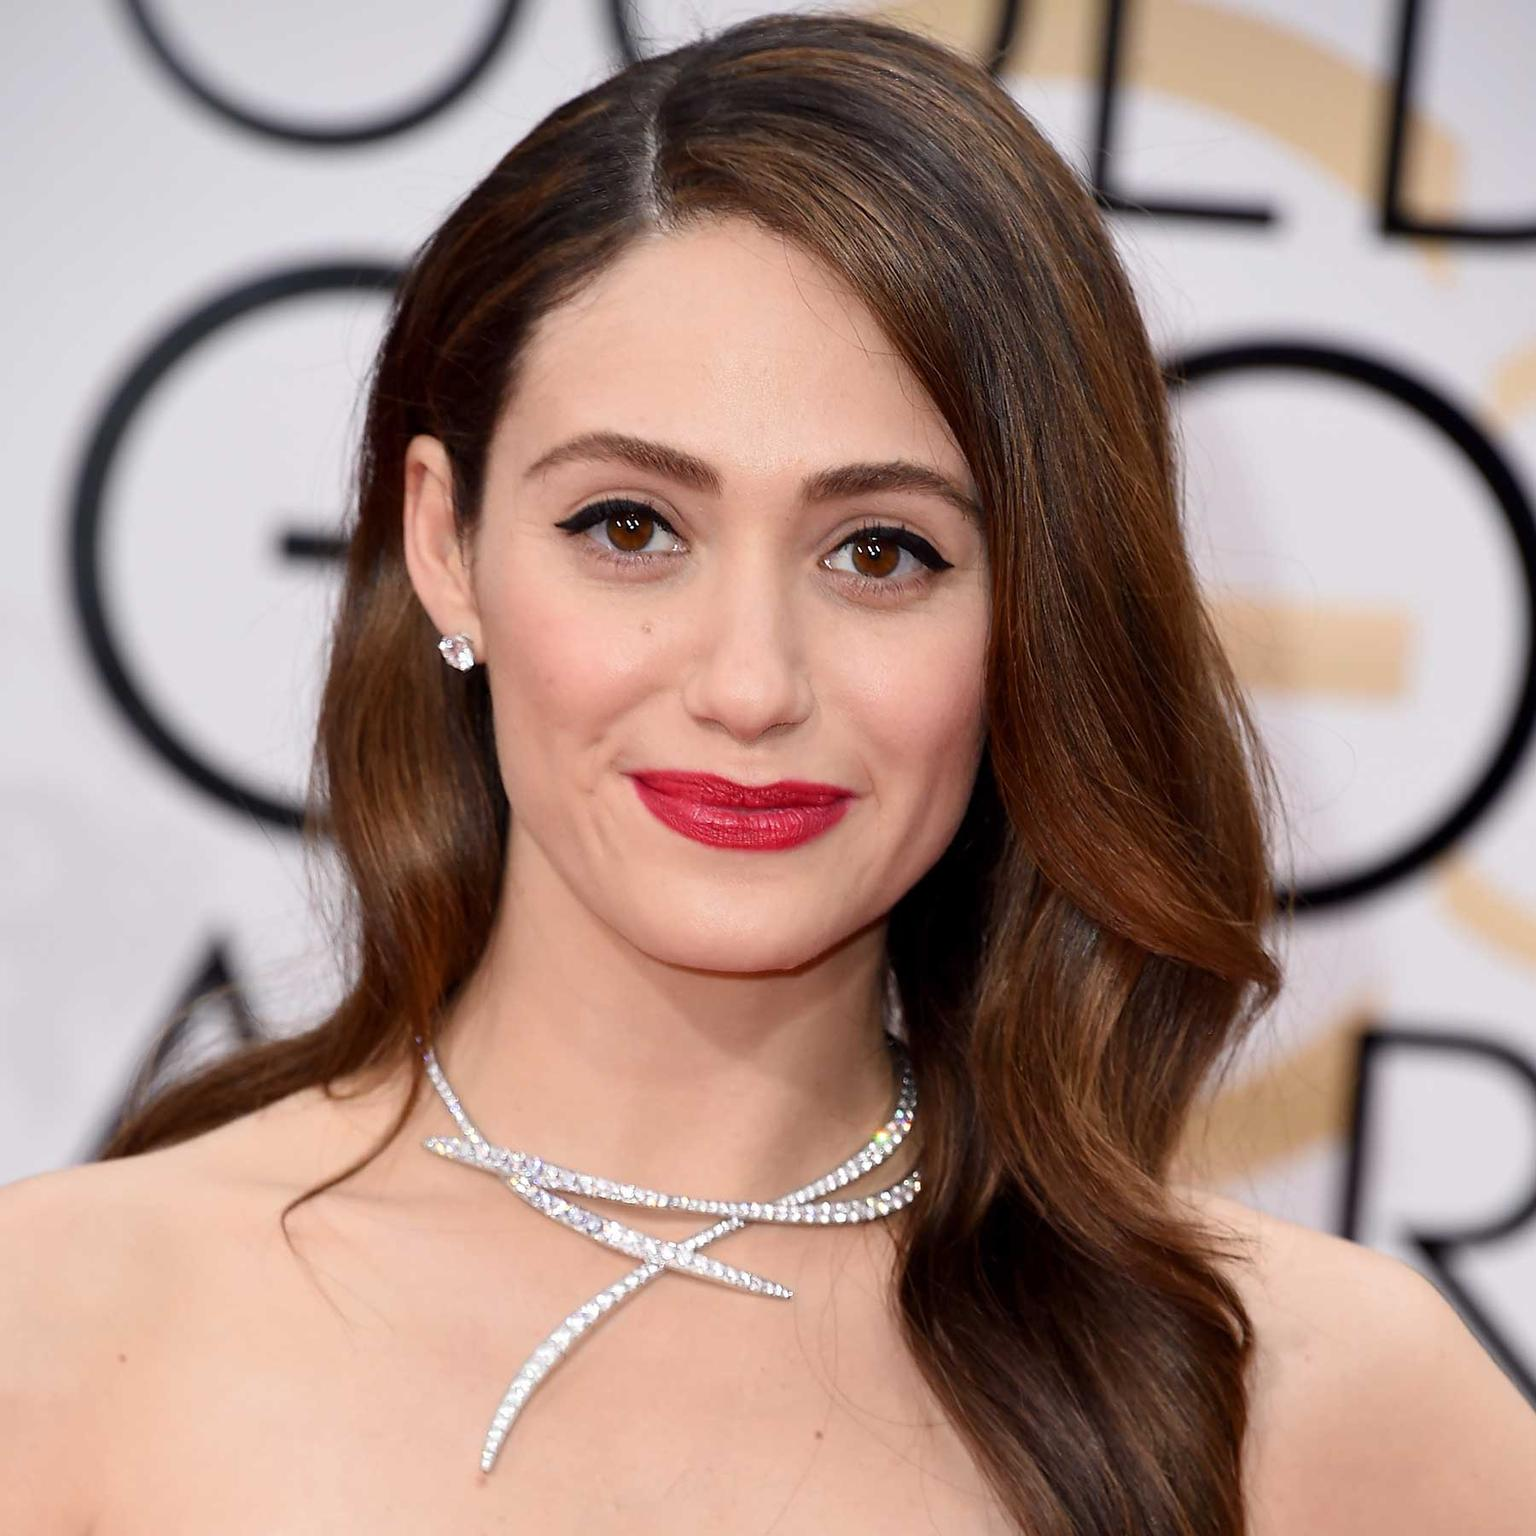 Emmy Rossum chose an asymmetrical Van Cleef & Arpels diamond necklace for the Golden Globes 2016